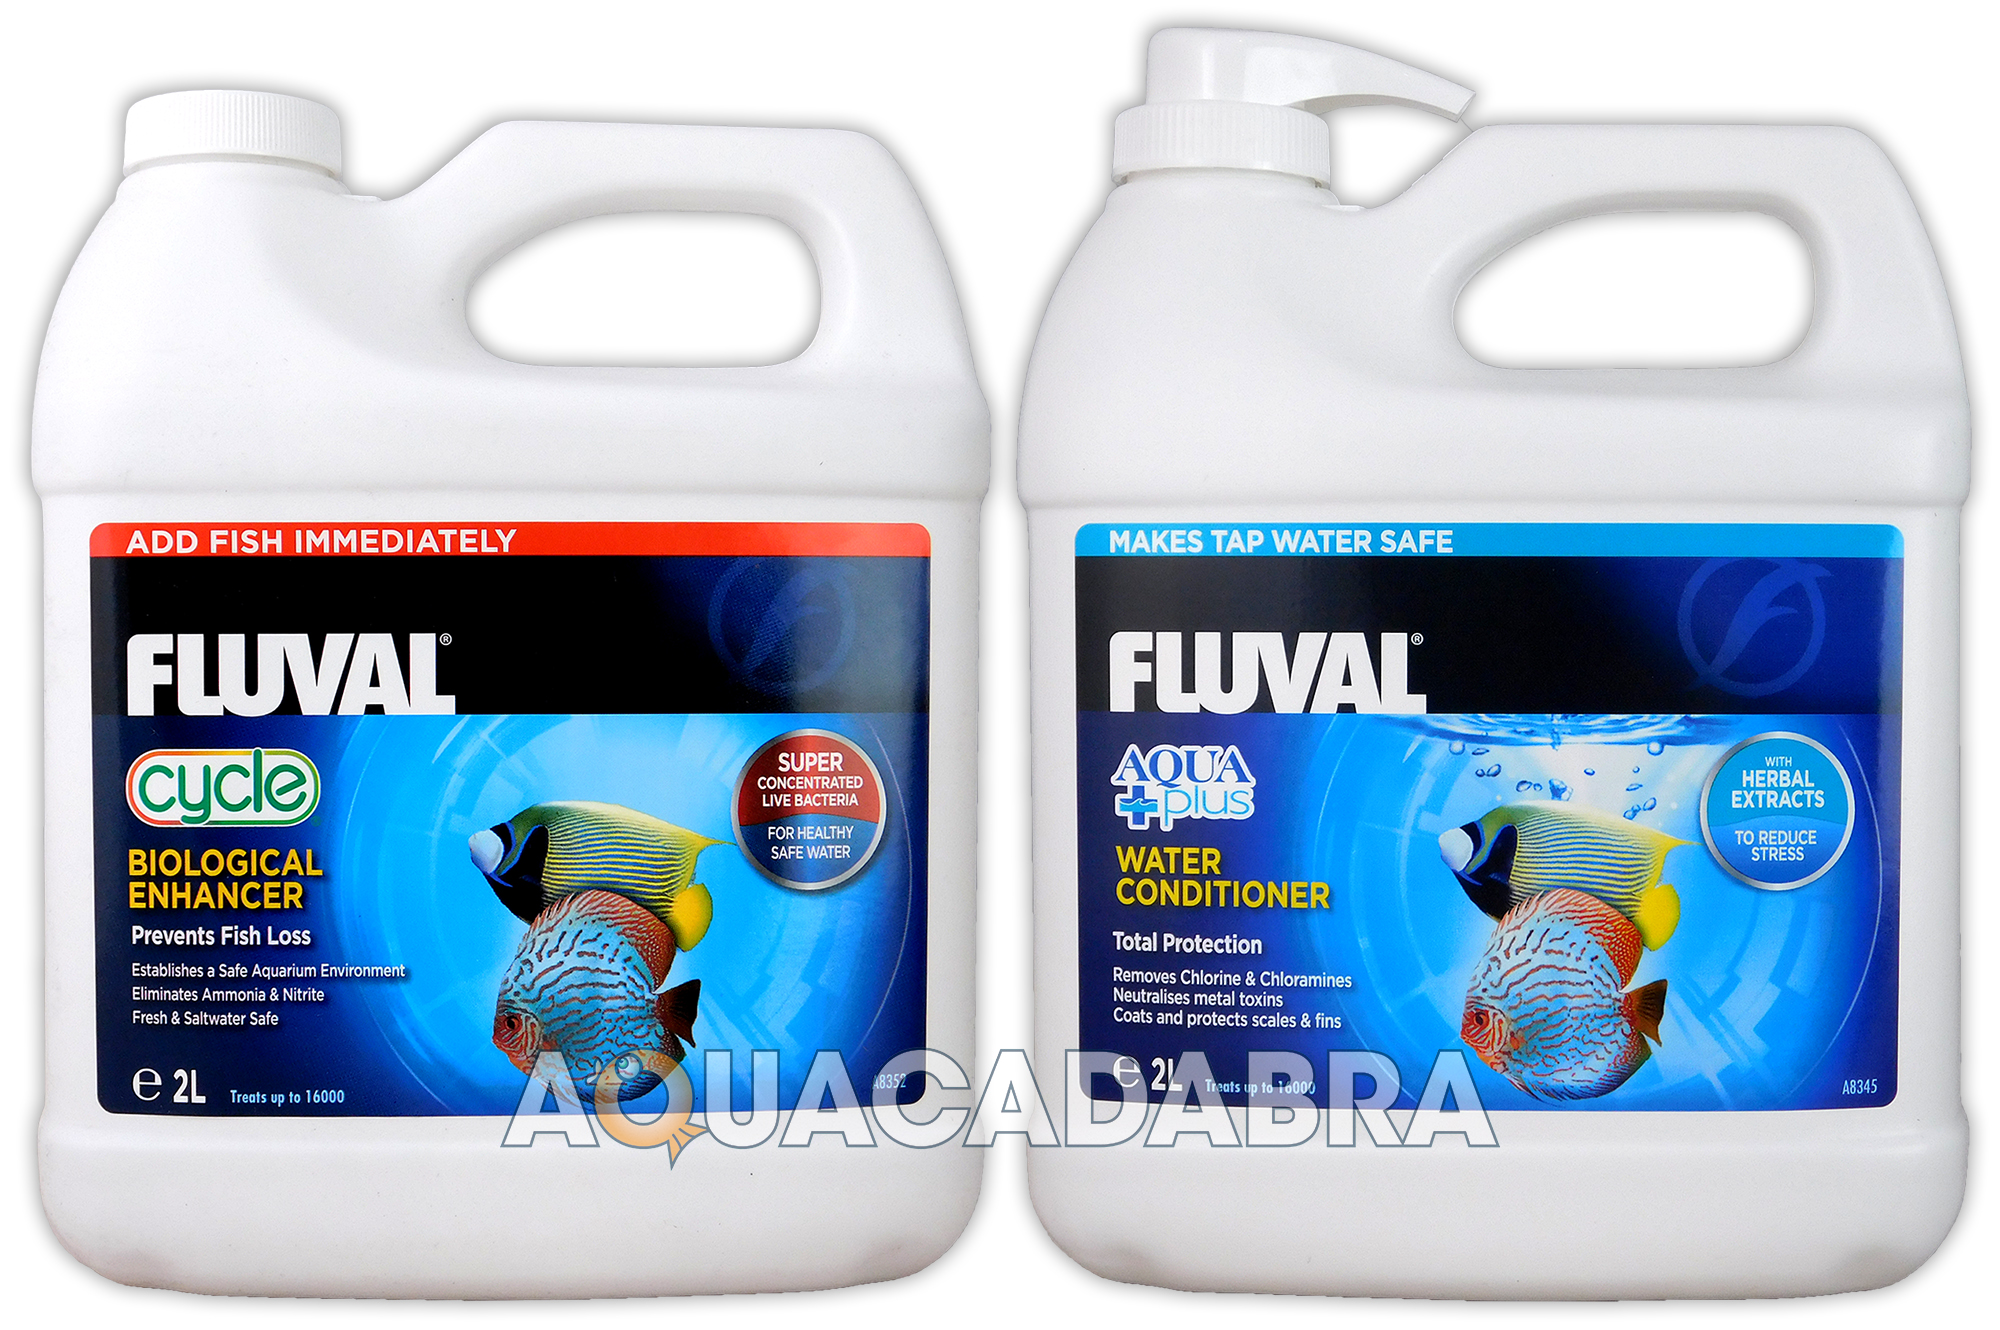 Fluval aquaplus cycle biological water conditioner fish for How to make tap water safe for fish